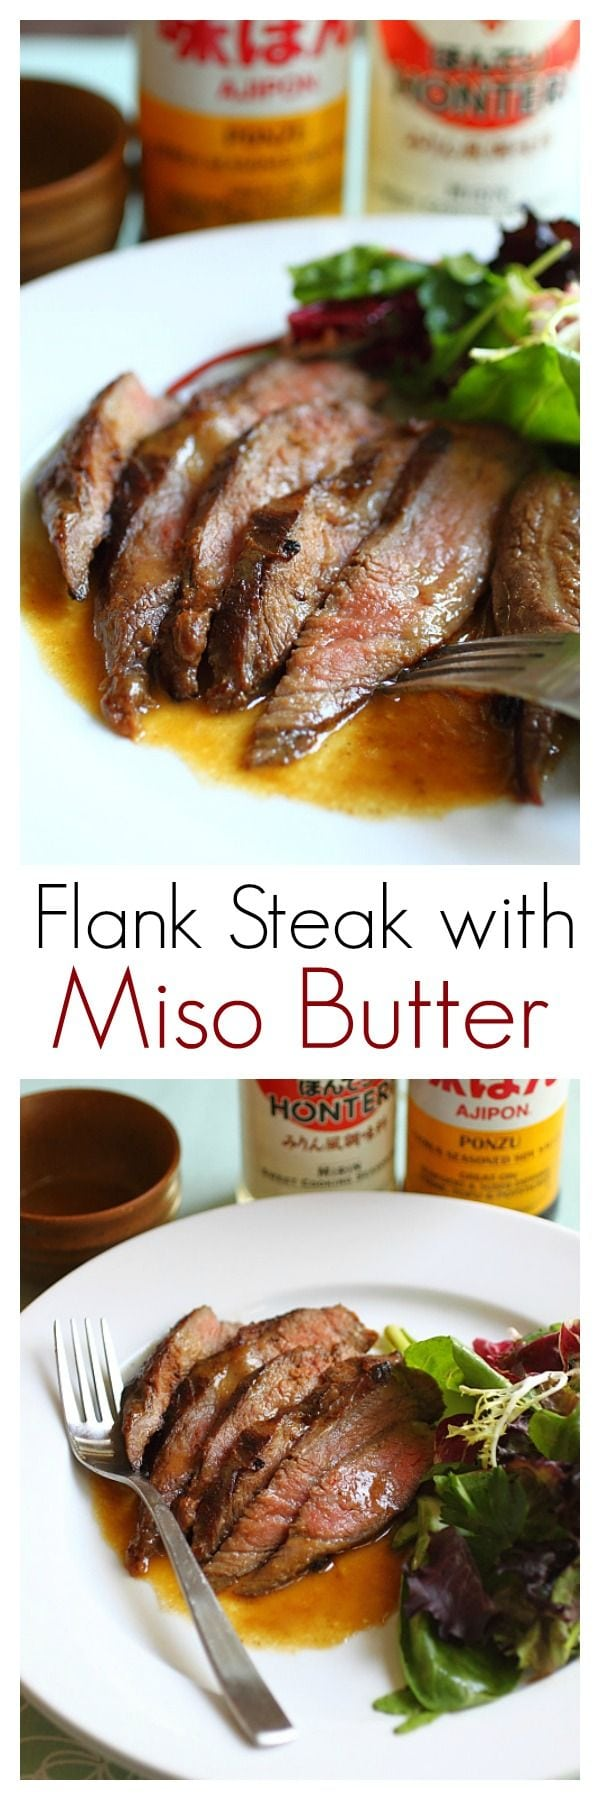 Grilling flank steak with marinade of ponzu, miso and butter. This flank steak recipe is easy and yields tender, juicy and flavorful steak | rasamalaysia.com